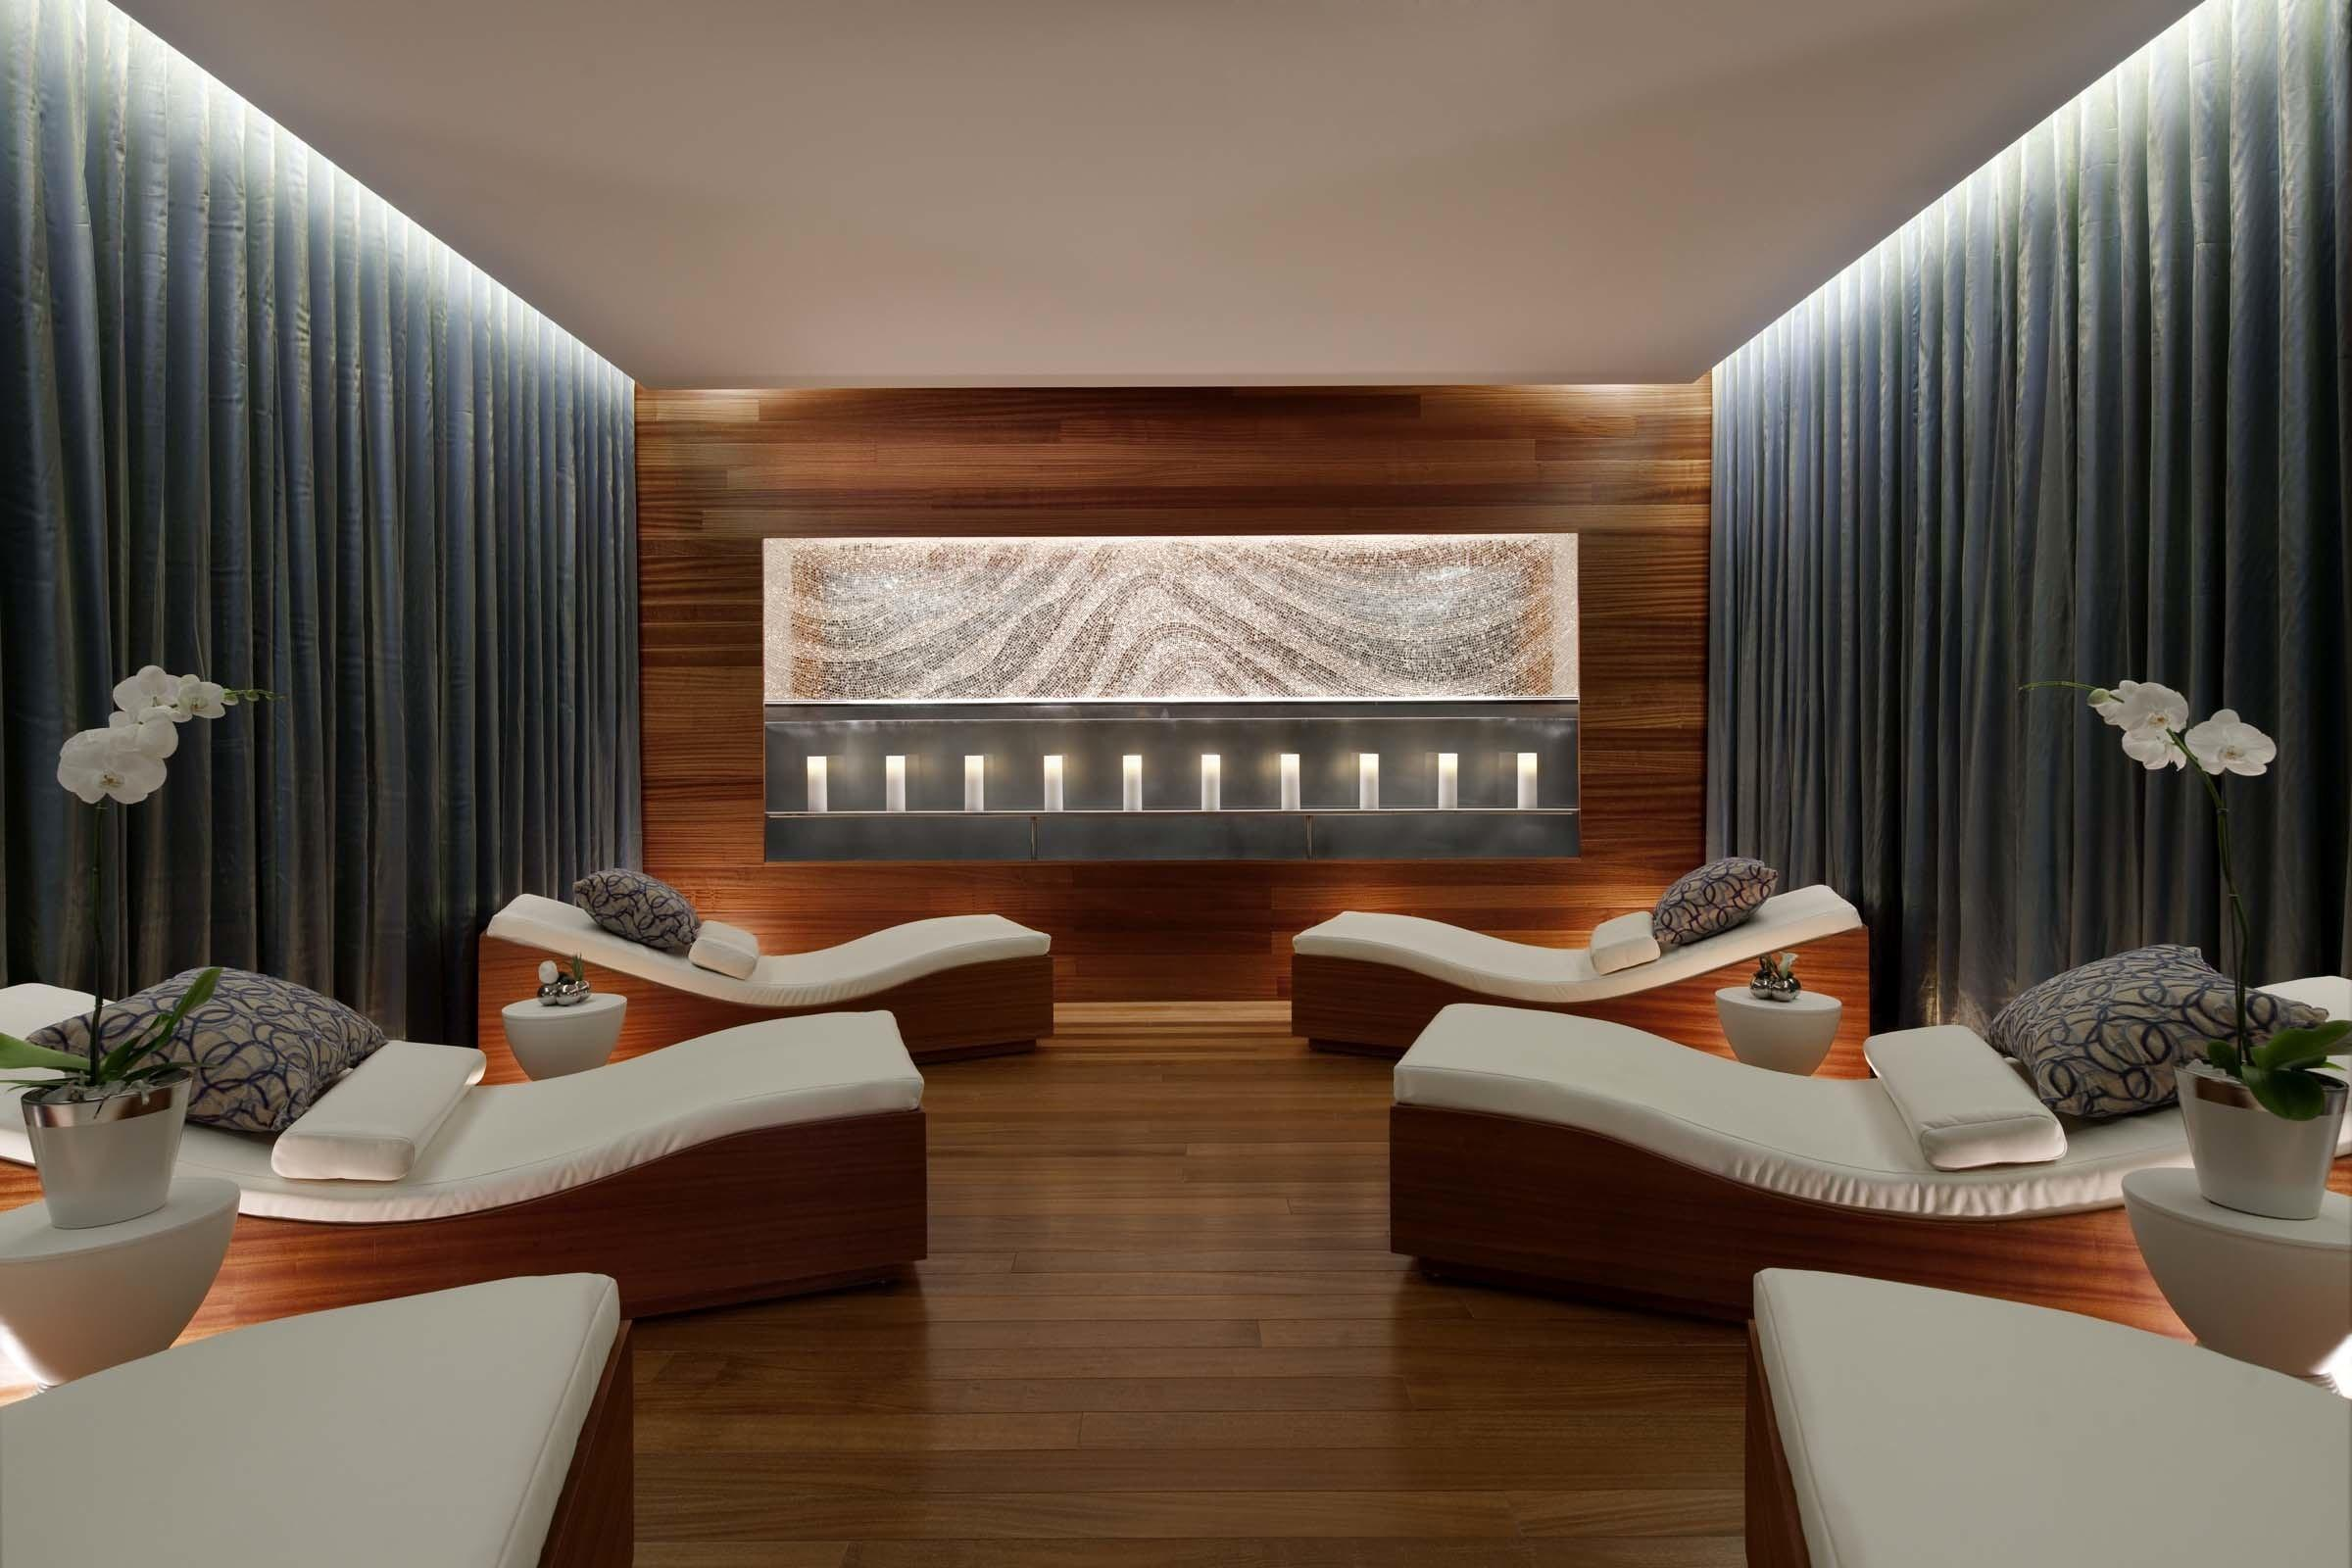 Vdara Hotel Spa Receives First Four Star Award Forbes